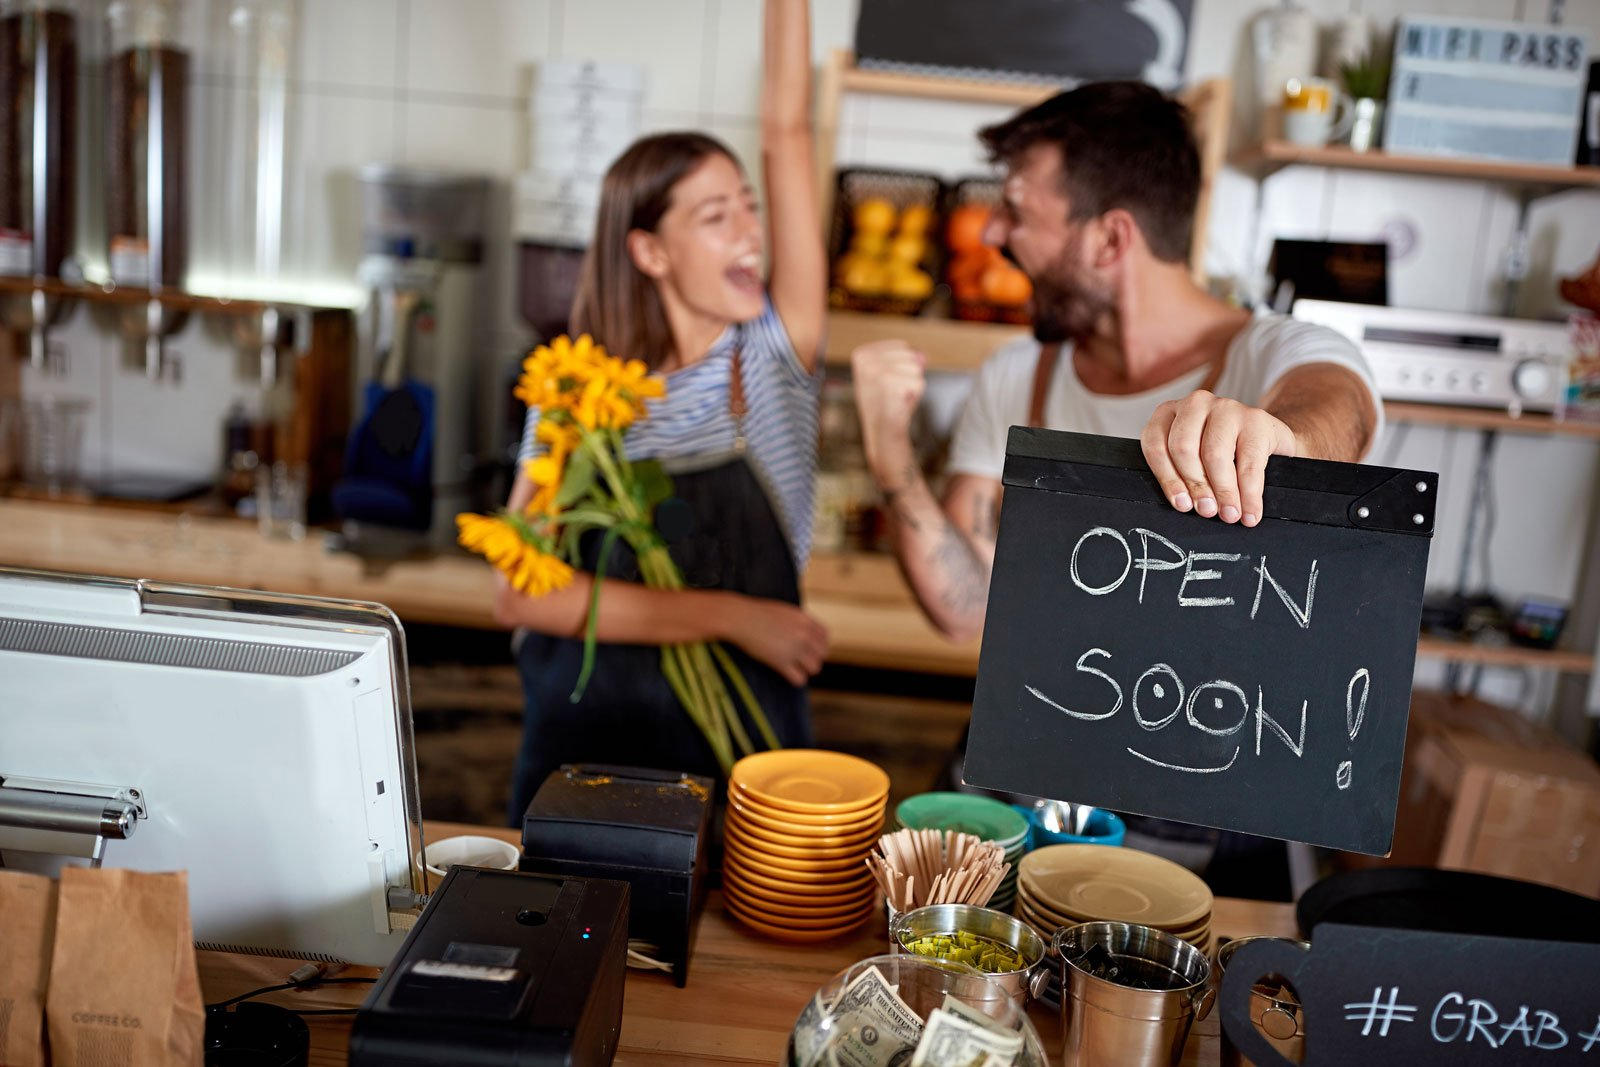 coffee shop owners with open sign